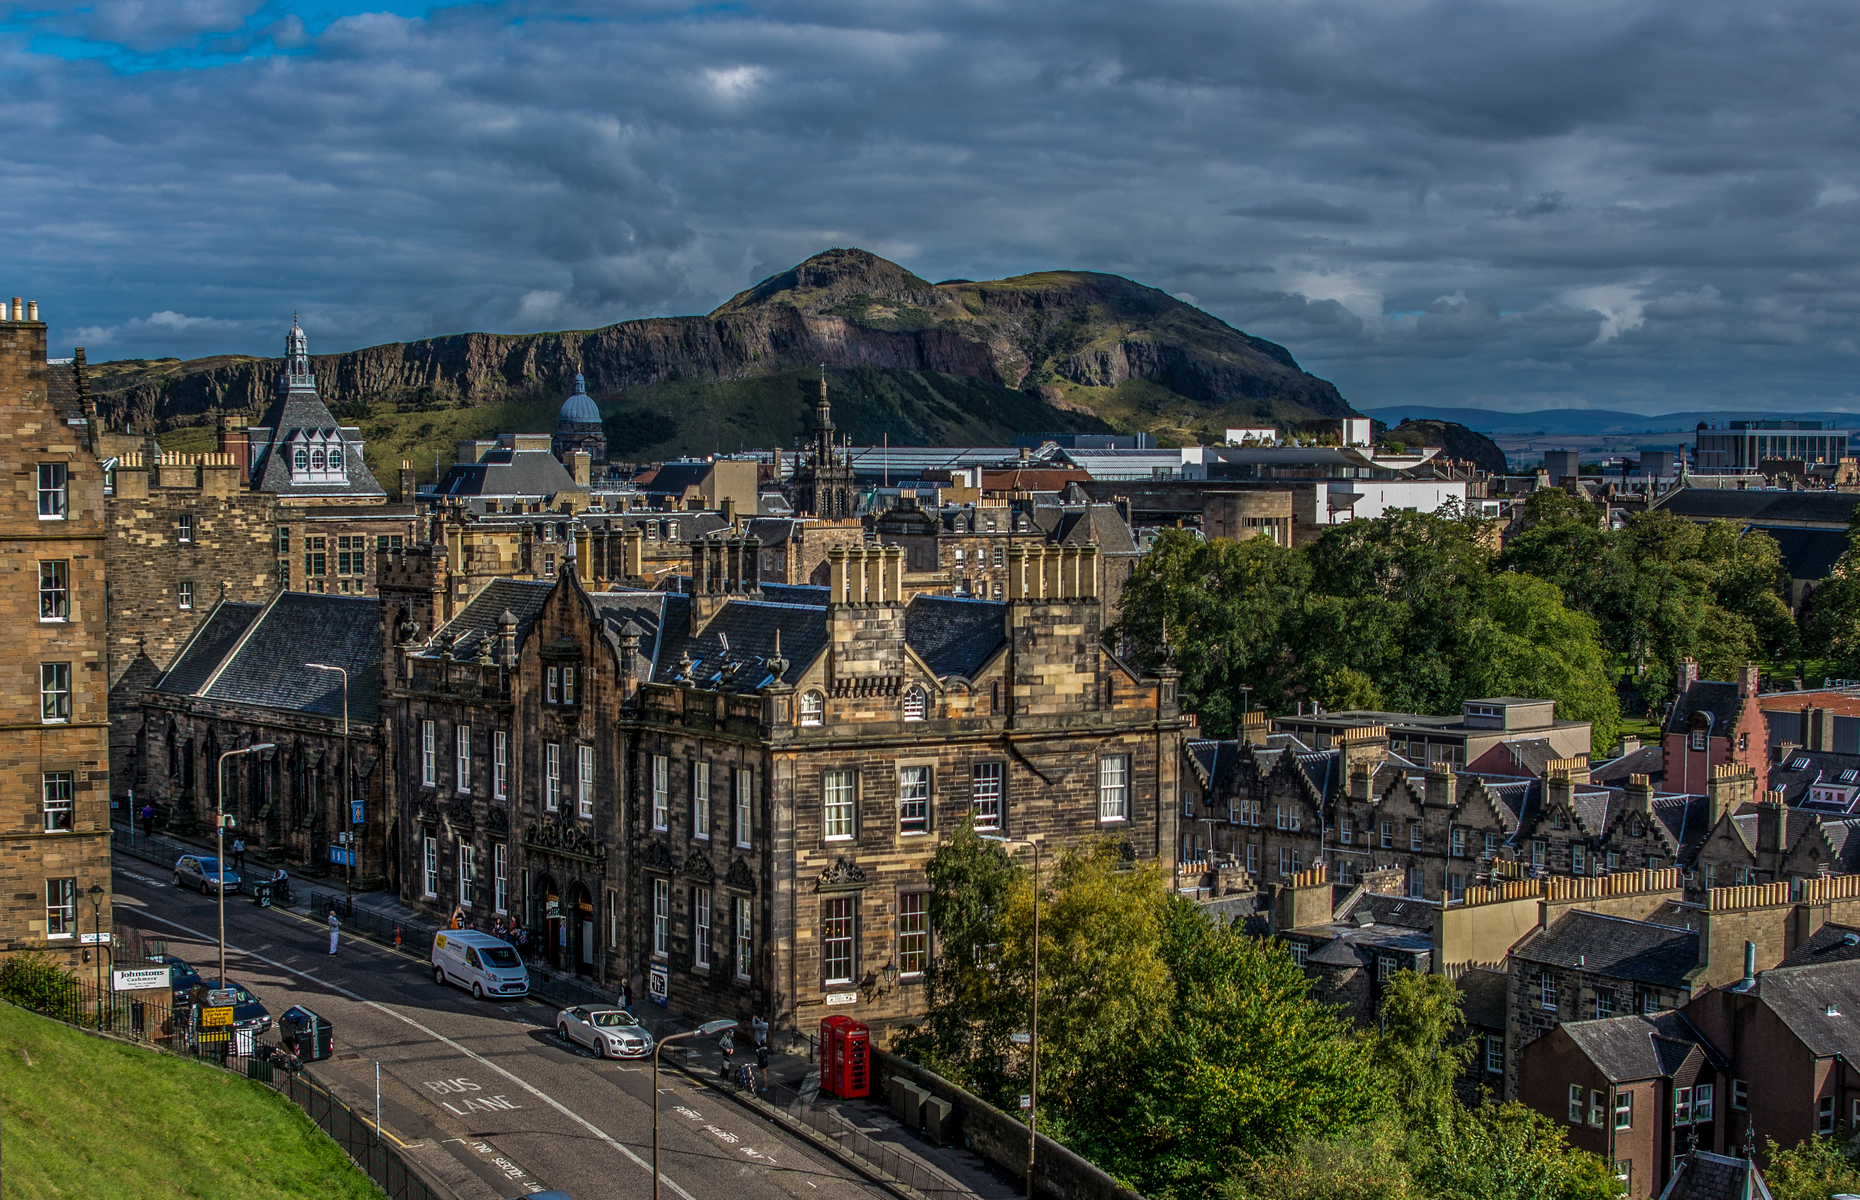 Homeowners in the historic city of Edinburgh could charge the steepestrent. Image: NVVisuals / Shutterstock